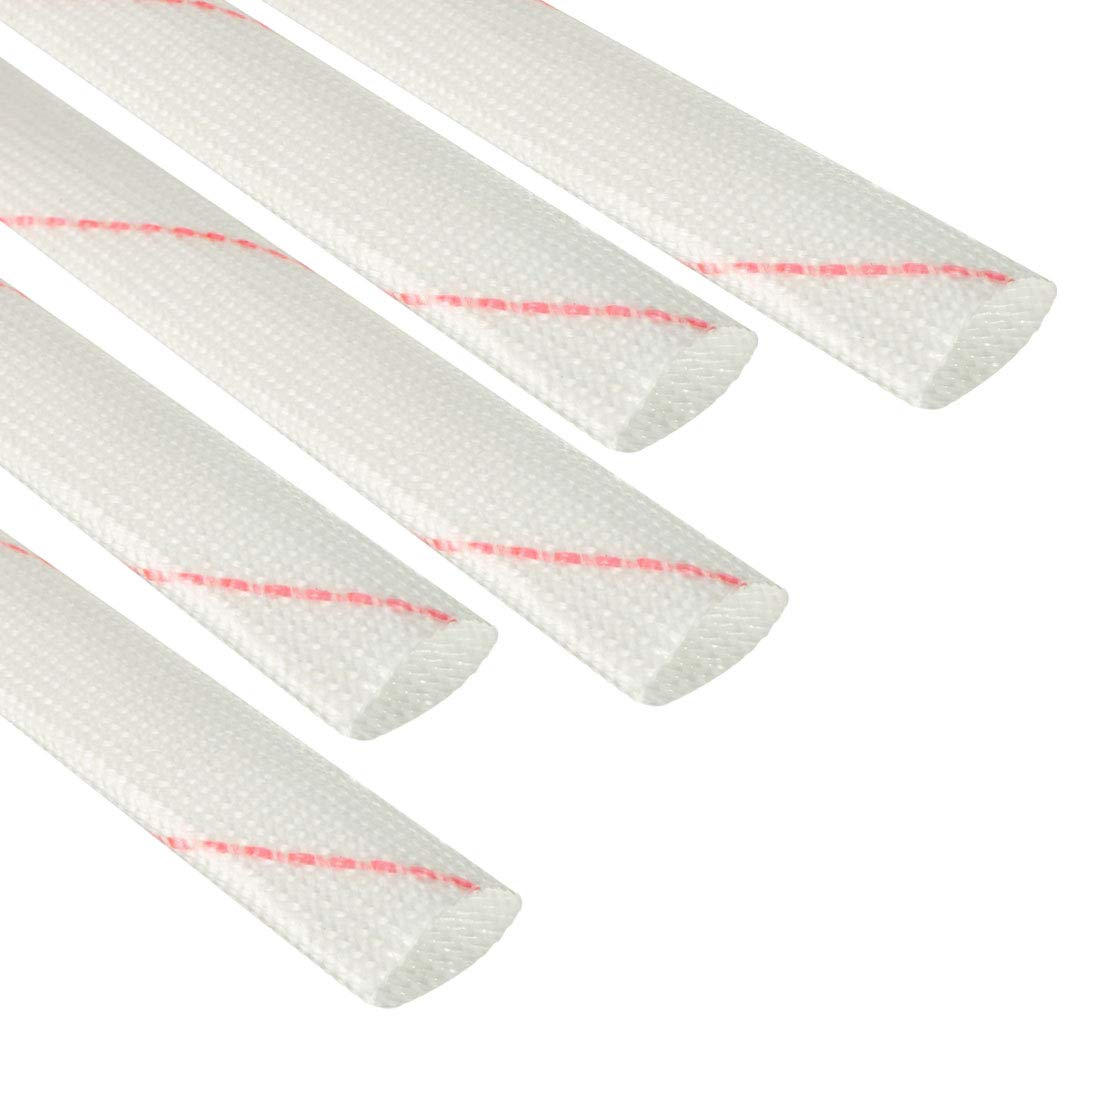 uxcell 20Pcs 3ft Length 4mm Inner Dia Flexible Electrical Wire PVC Fiberglass Insulation Sleeves Pipe Tube Cable Wrap